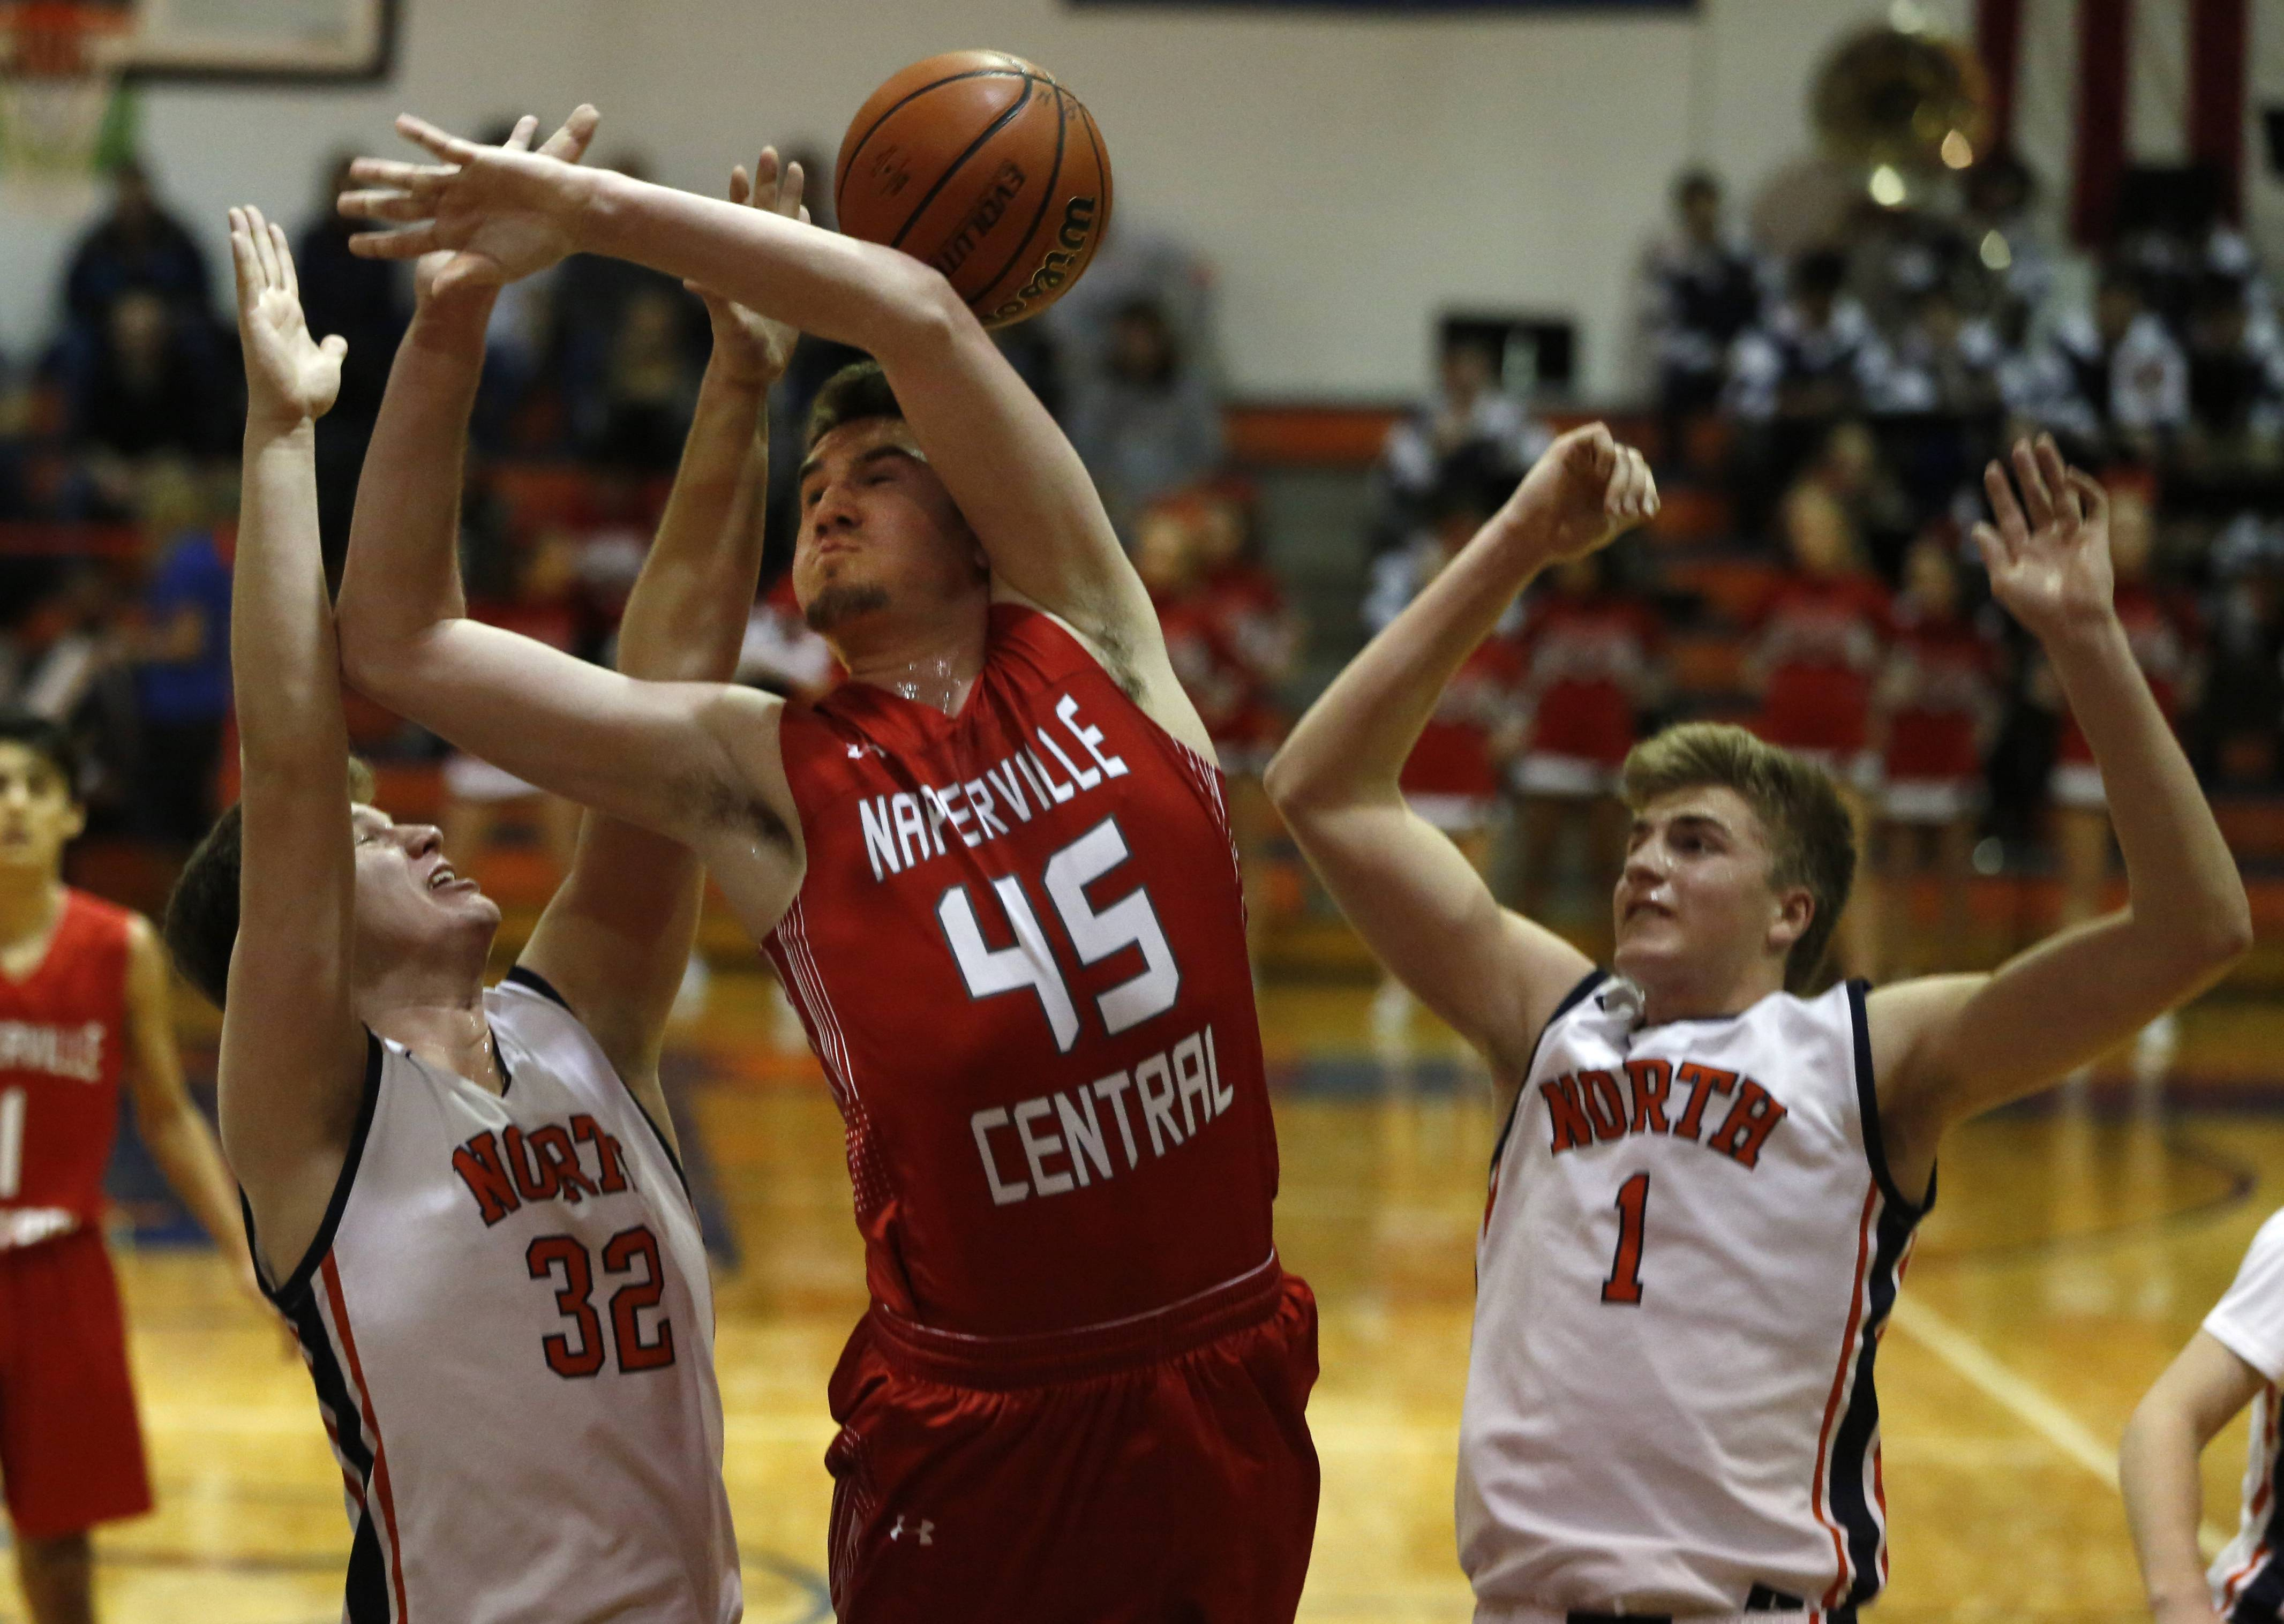 Naperville Central's Benjamin Wolf (45) battles Naperville North's Chris Johnson (32) and Tom Welch (1).